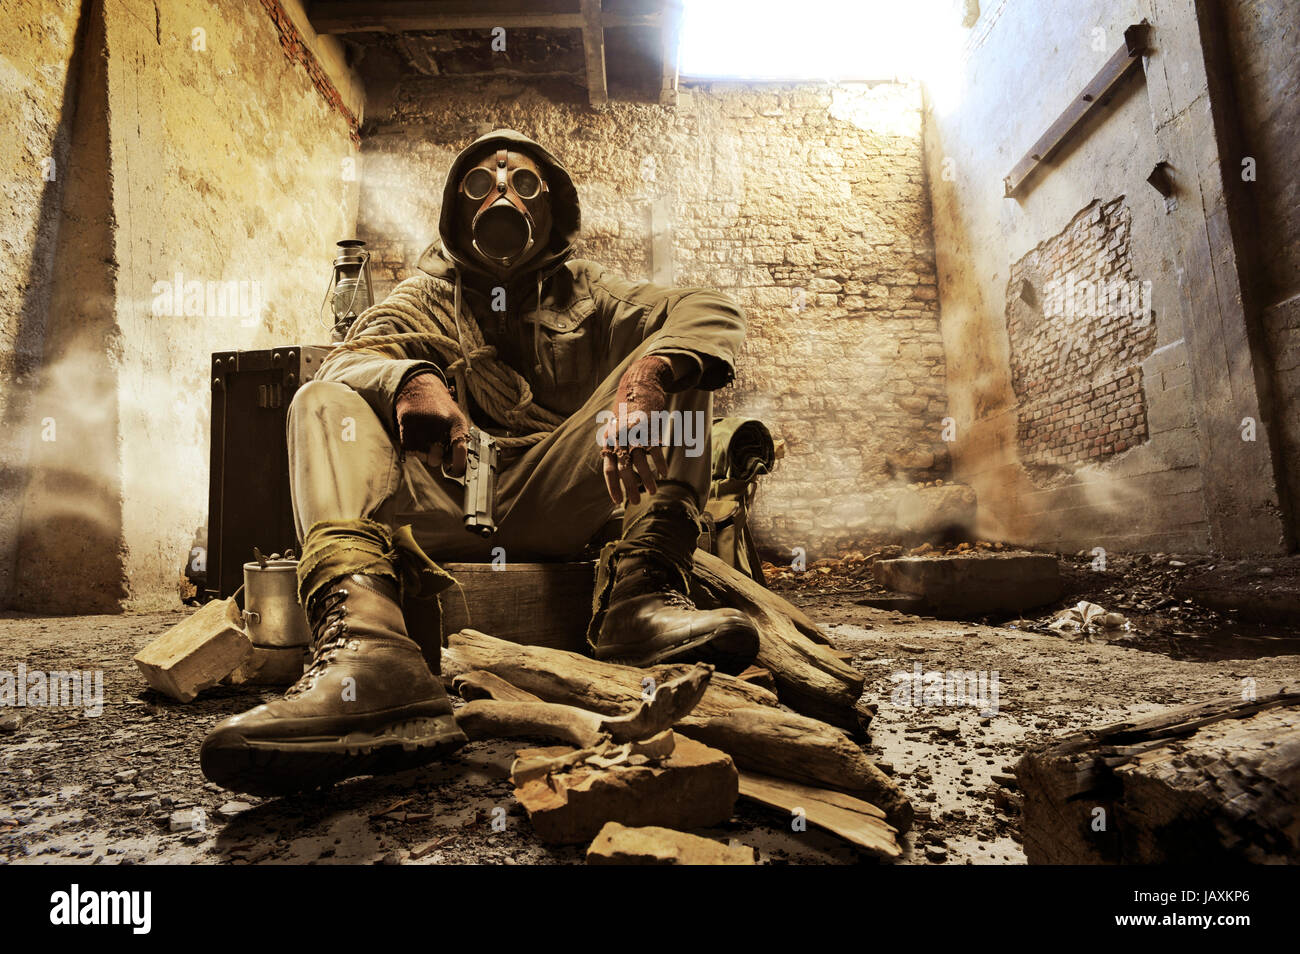 Post apocalyptic survivor in gas mask - Stock Image